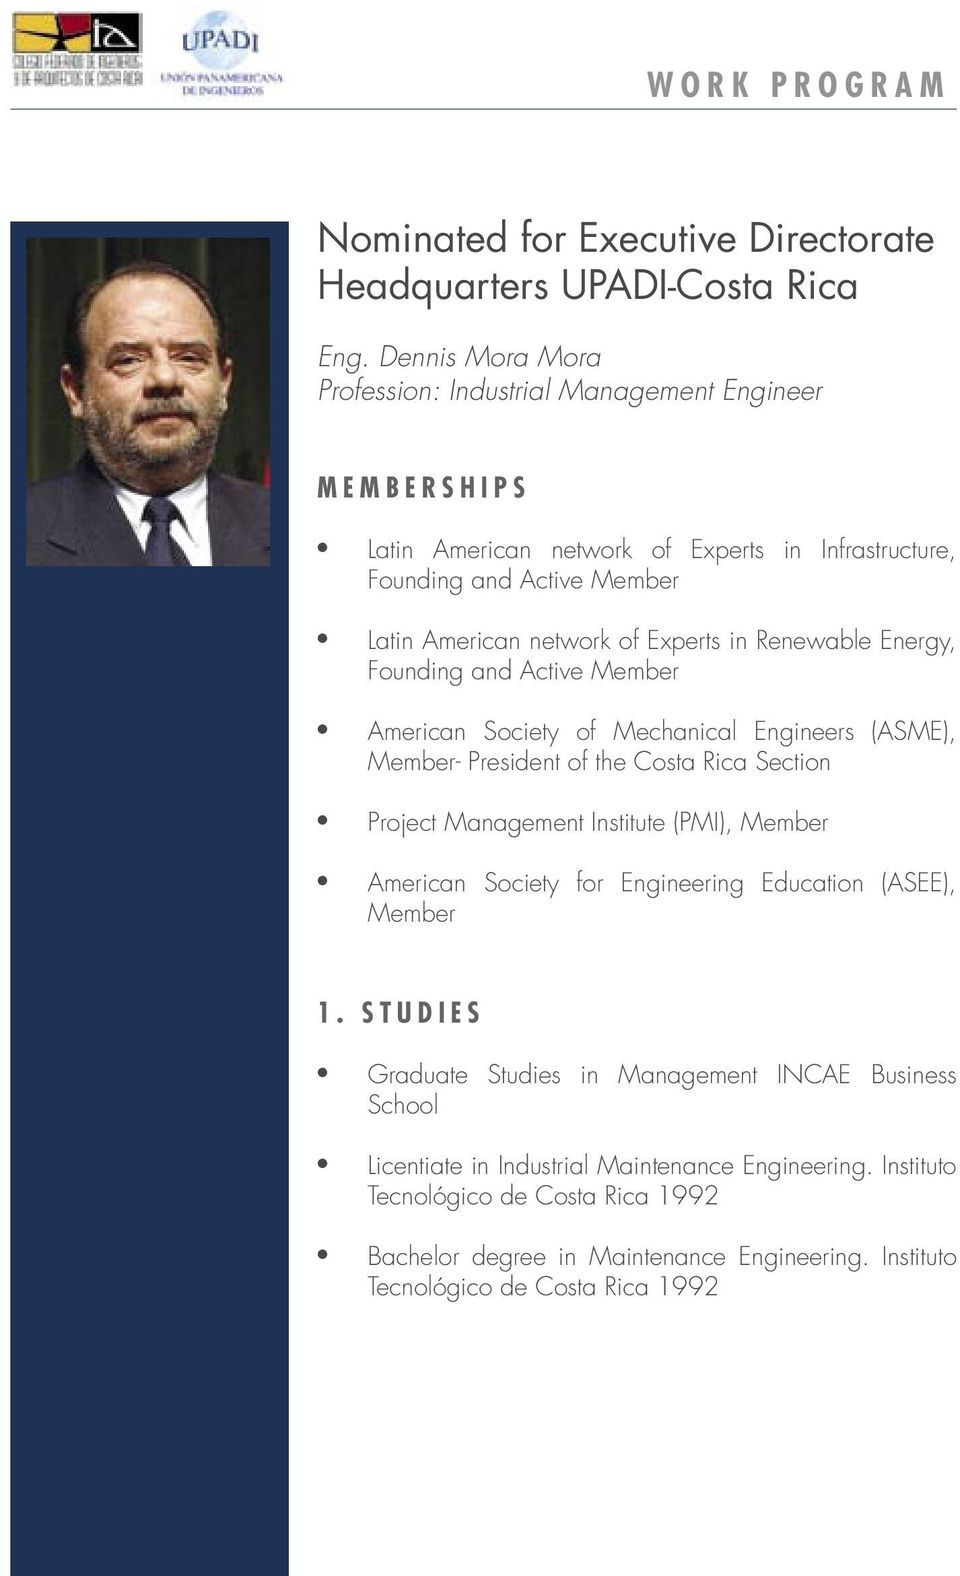 Experts in Renewable Energy, Founding and Active Member American Society of Mechanical Engineers (ASME), Member- President of the Costa Rica Section Project Management Institute (PMI),